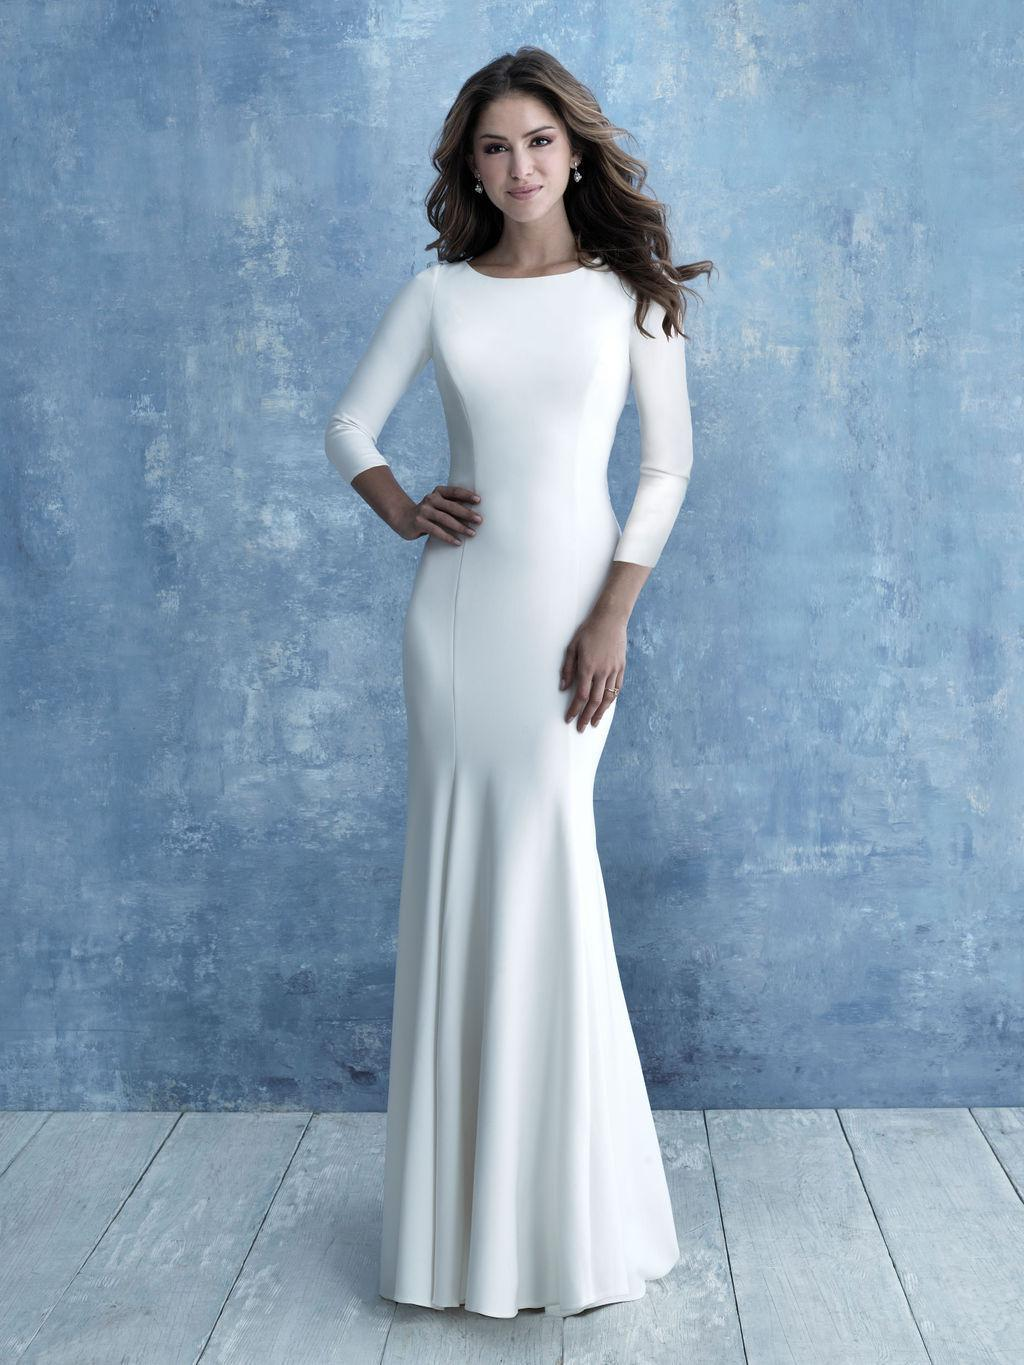 Allure M640 modest wedding dress with long sleeves crepe fitted LDS Bridal gown cheap plus size brides